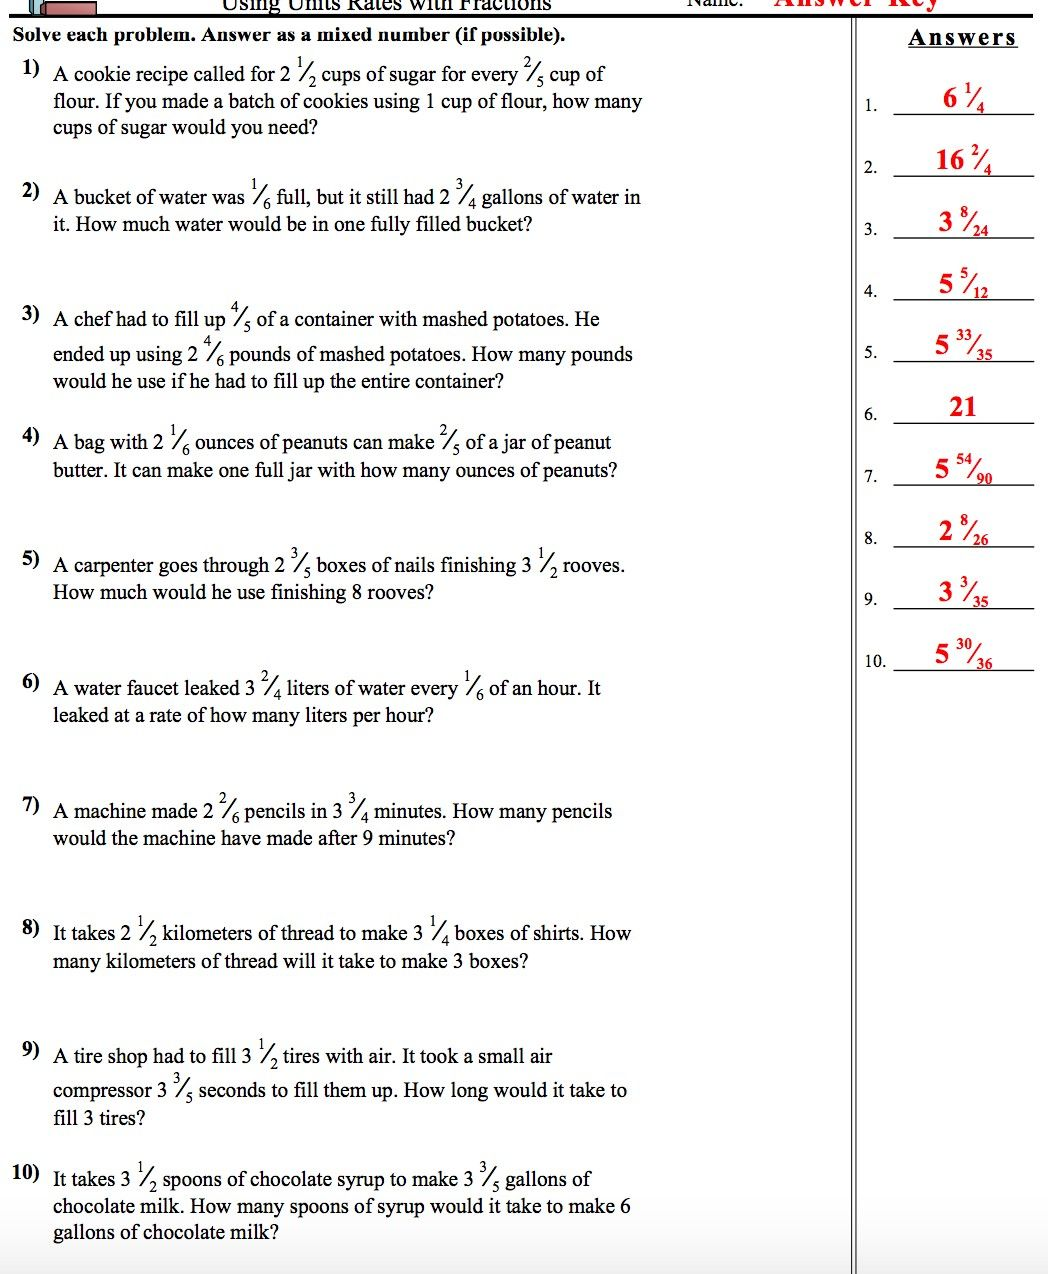 hight resolution of https://dubaikhalifas.com/pin-by-cassie-kennedy-on-7th-grade-compacted-math-common-core-worksheets-fractions-worksheets/